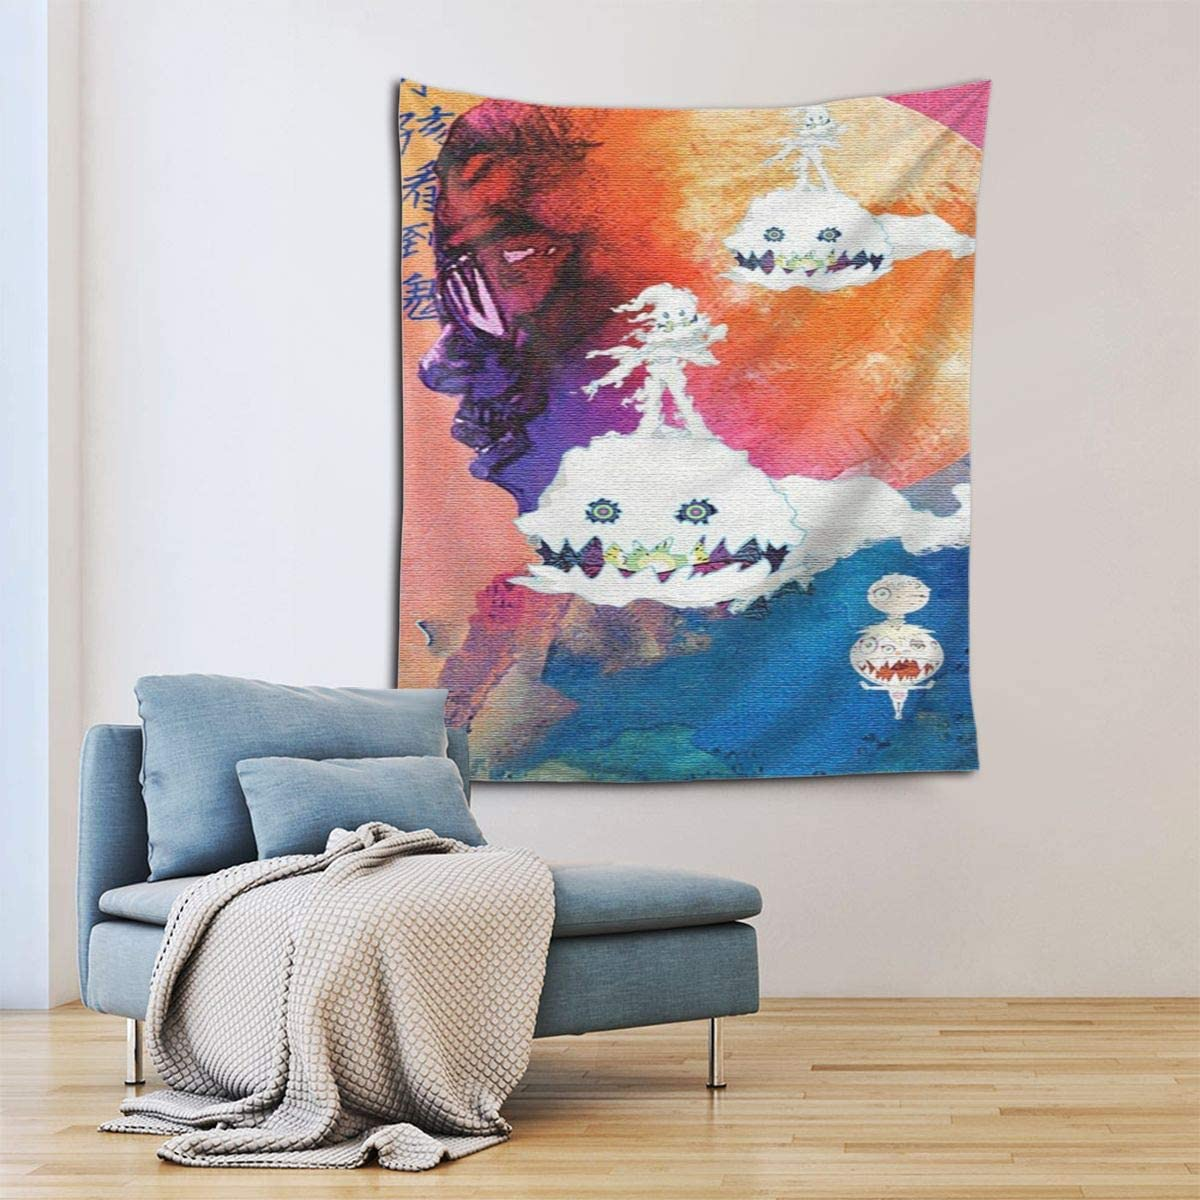 JUDE STEPHENSON K-i-d Cu-d-i Tapestry Wall Hanging Tapestry Decoration Wall Art for Bedroom Dorm Living Room Kitchen Home Decor 60x51 Inches